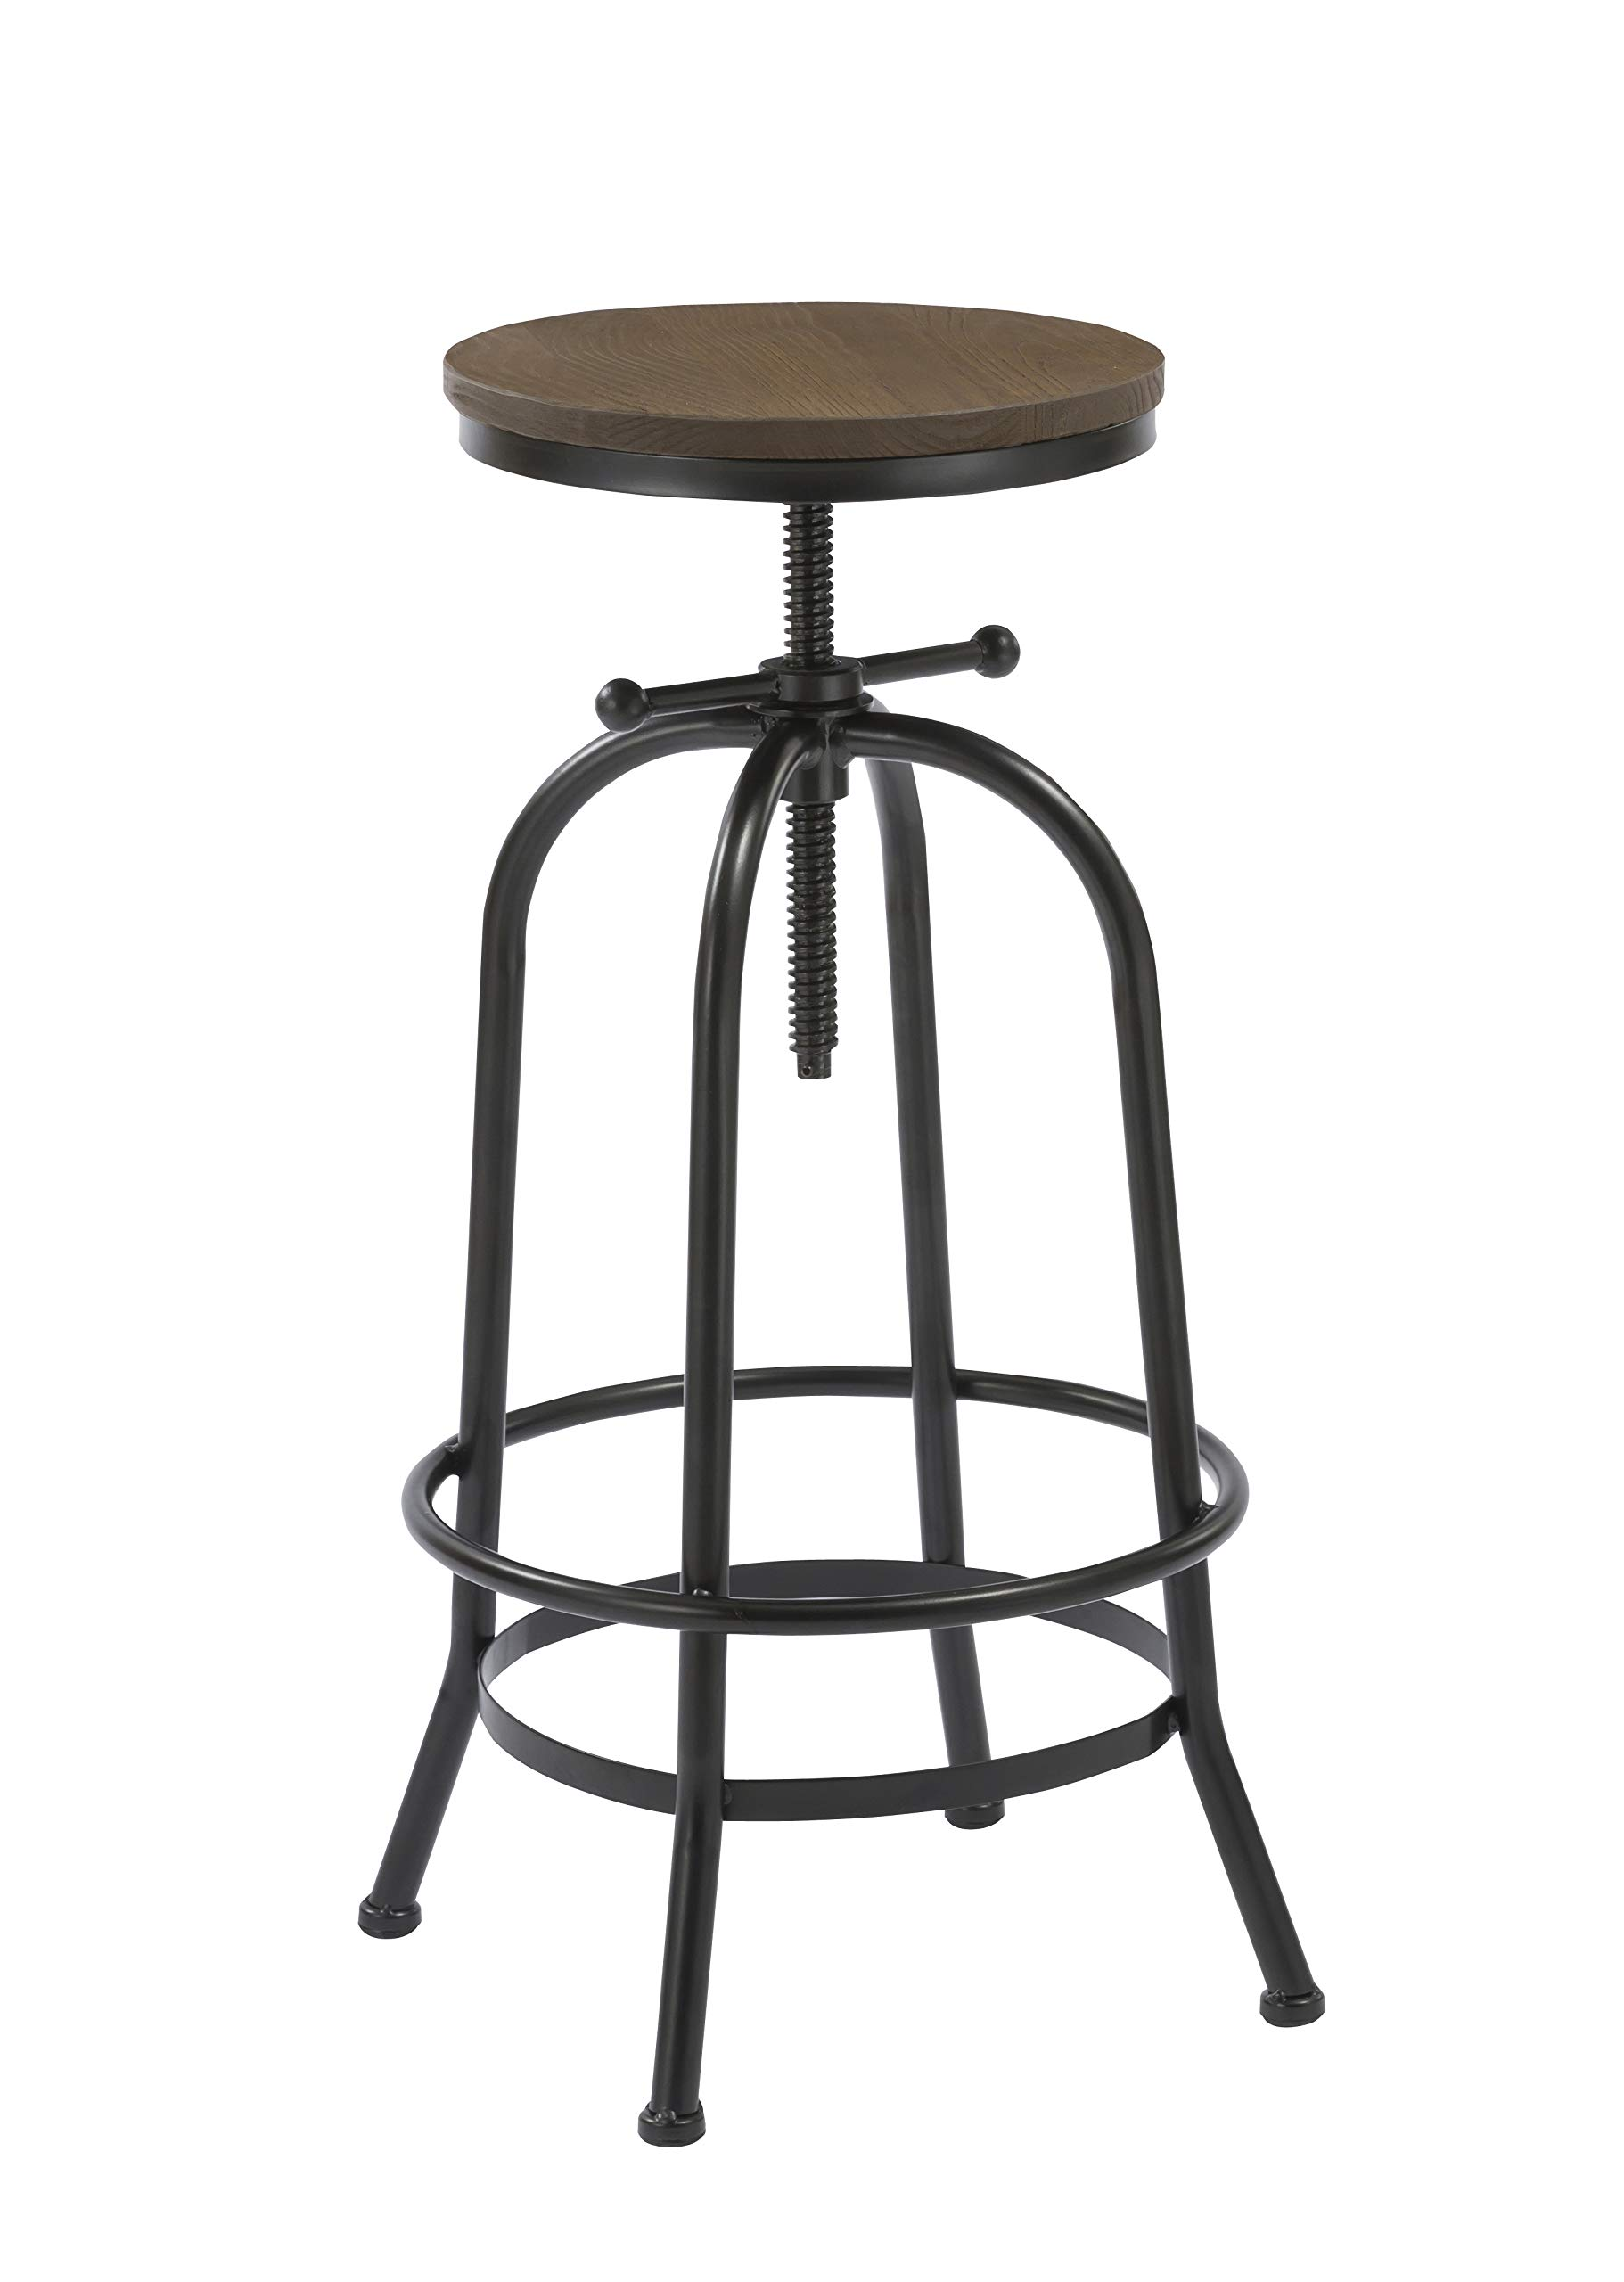 BTExpert 5083 27-35 inches Distressed Industrial Swivel 30'' Adjustable Counter Bar Height Pub Stool Wood